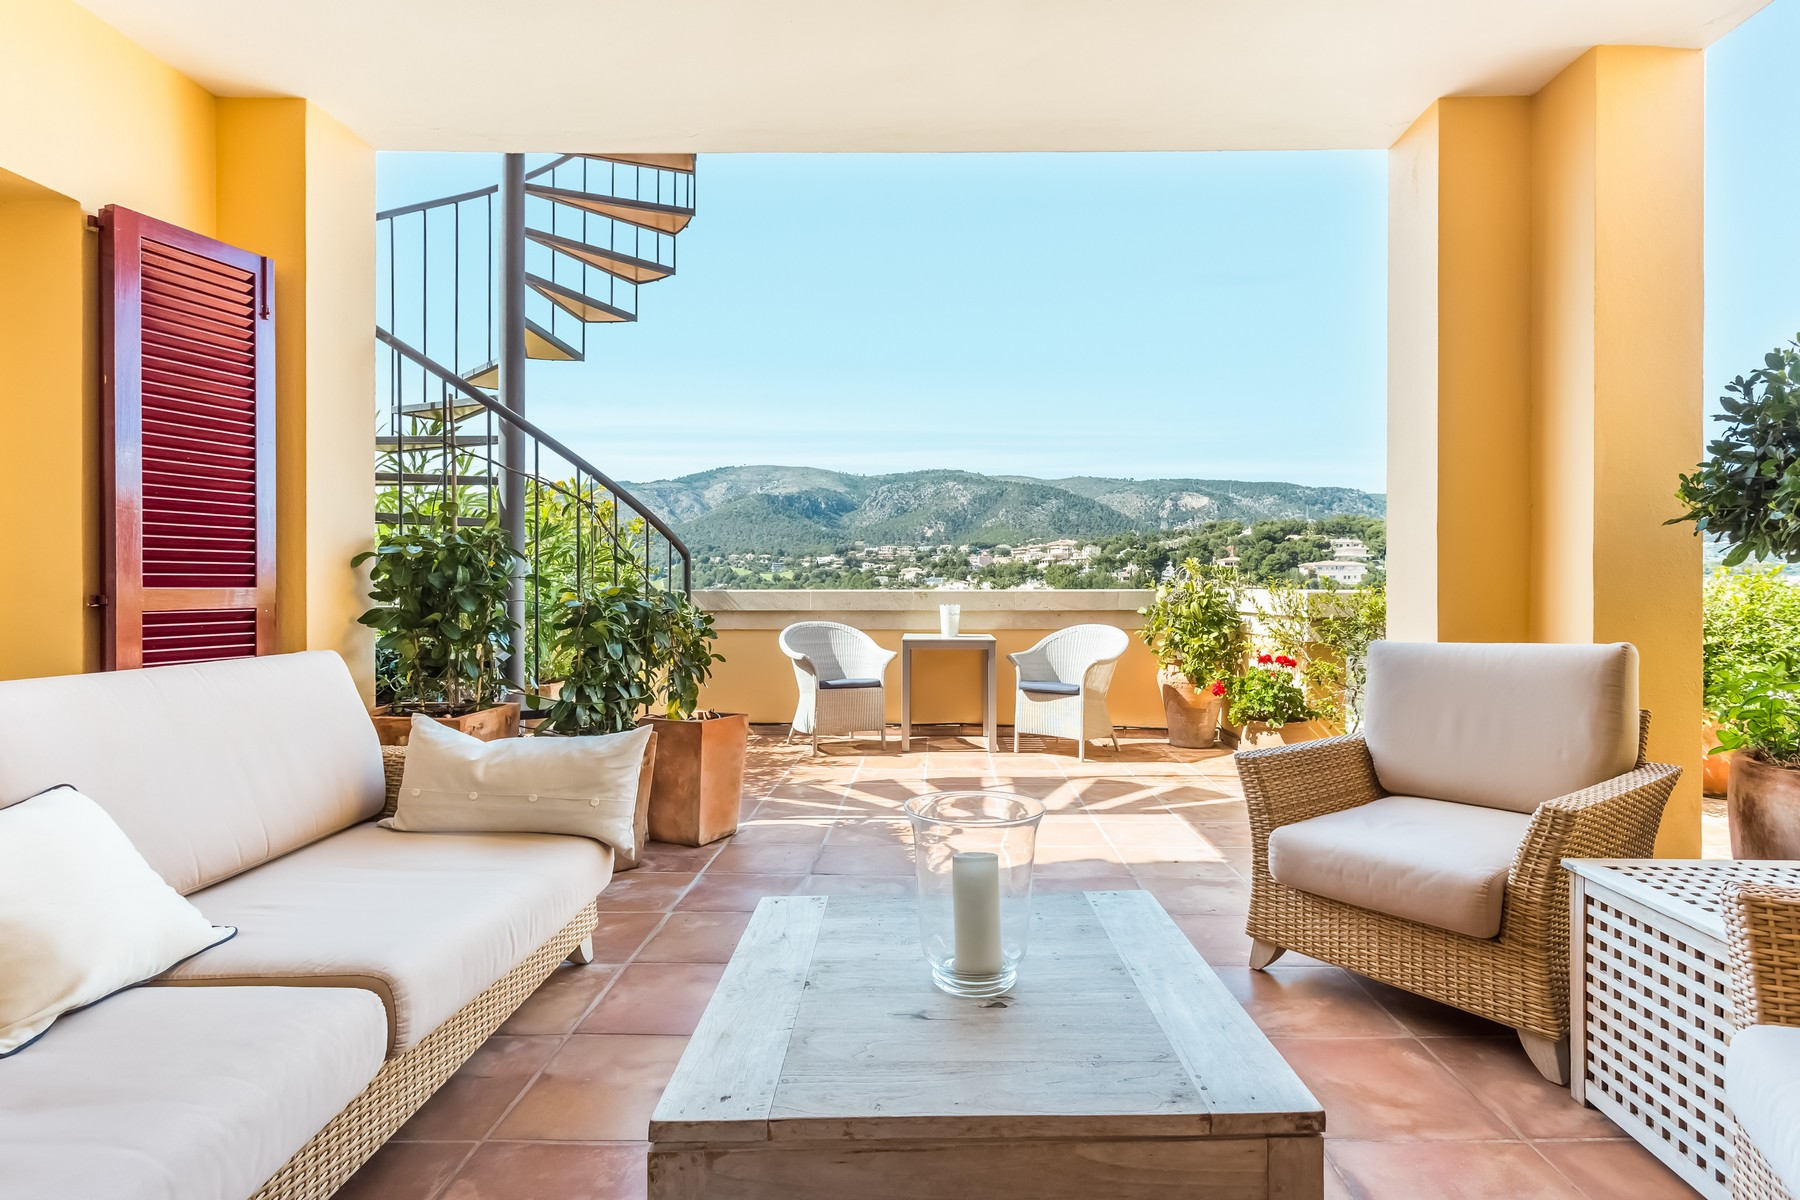 Apartment for Sale at Luxury Penthouse in Bendinat Bendinat, Mallorca, 07181 Spain